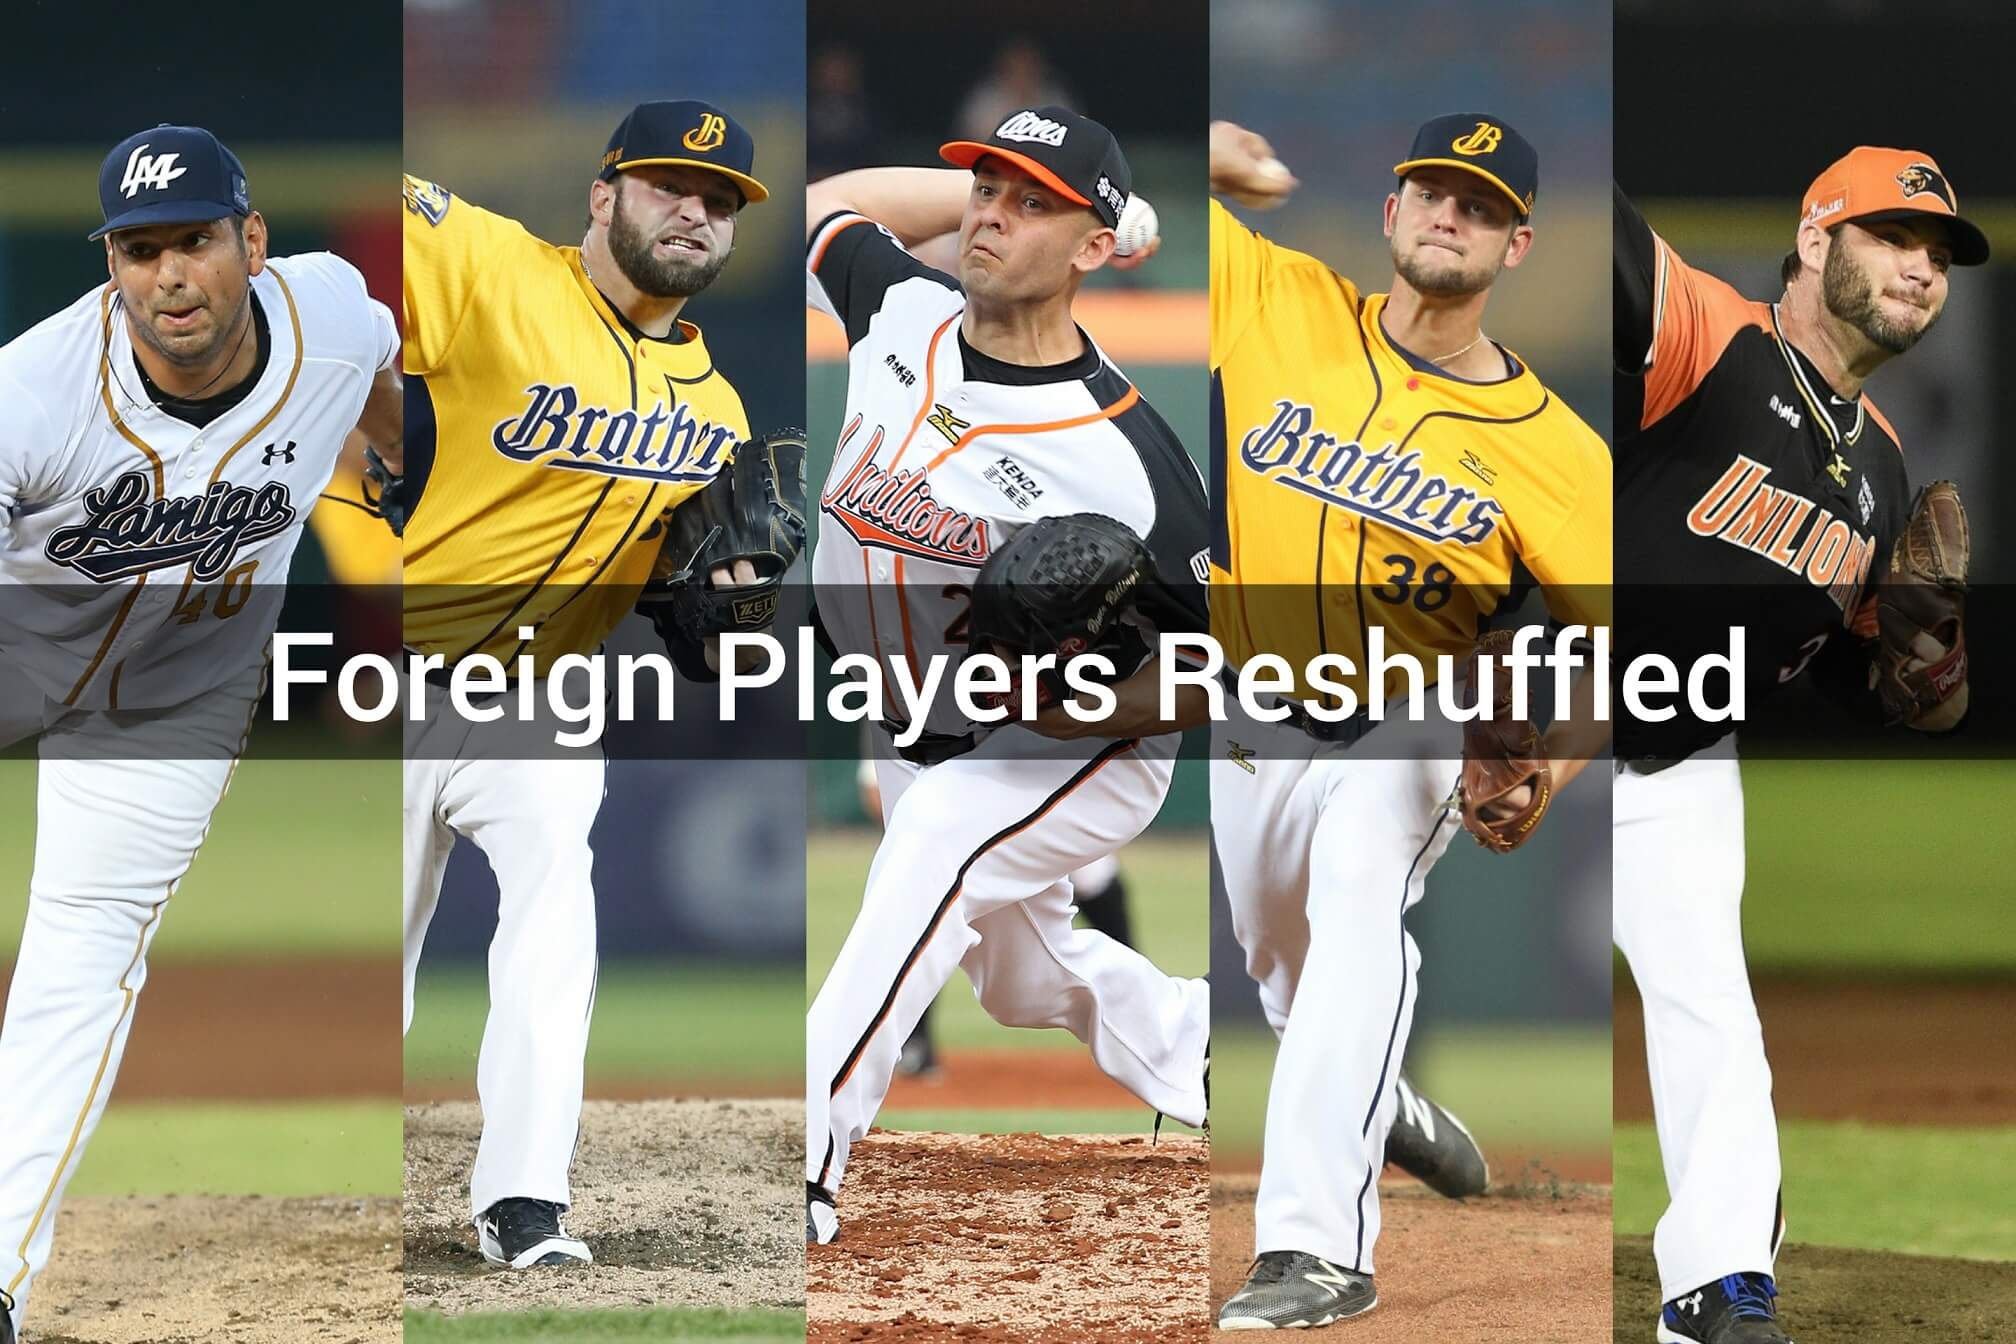 2018 CPBL foreign players reshuffled